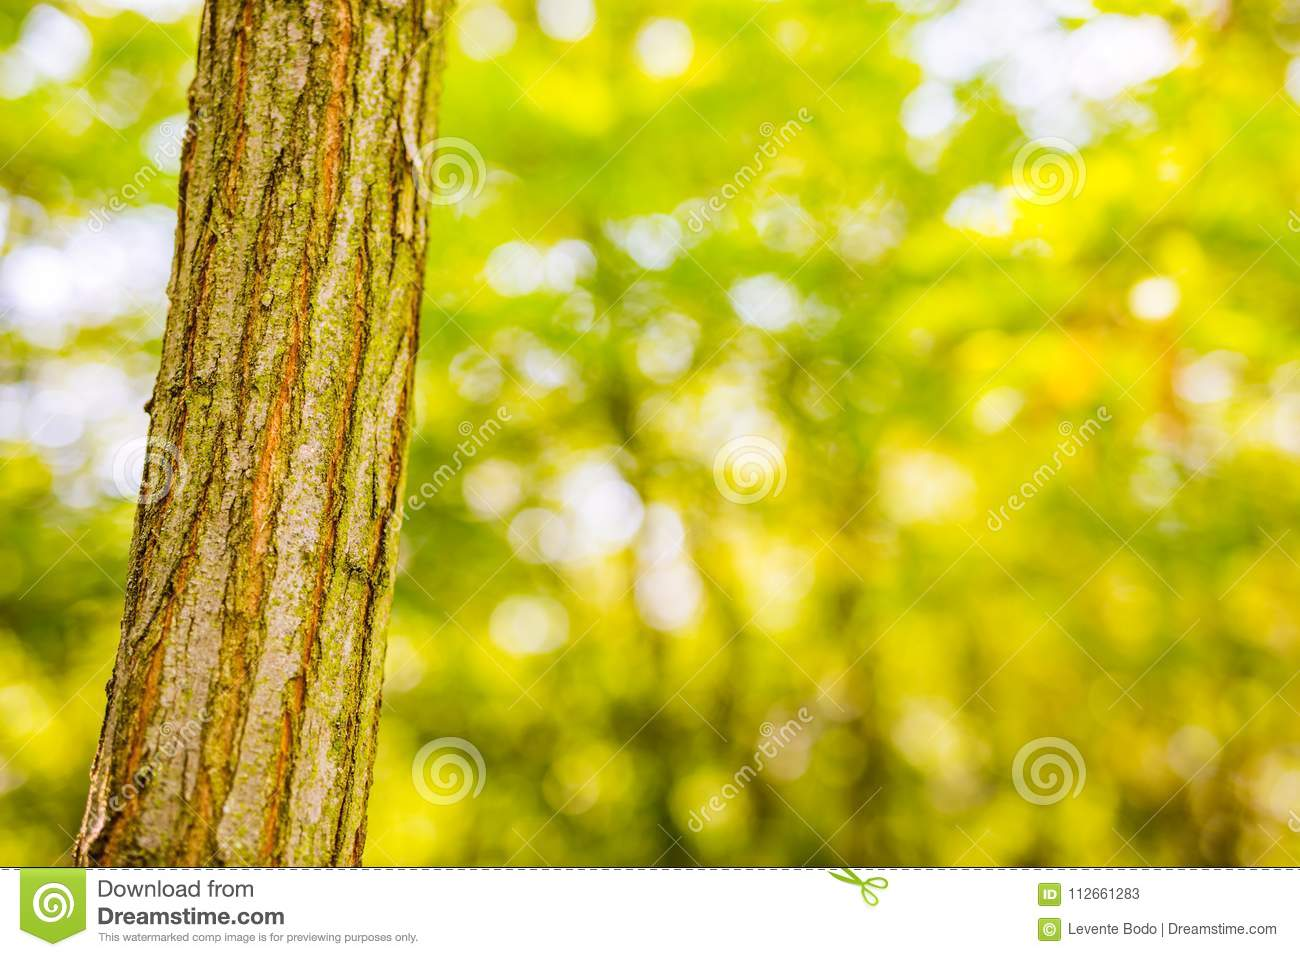 Tree Closeup On Summer Nature Background Stock Image - Image of